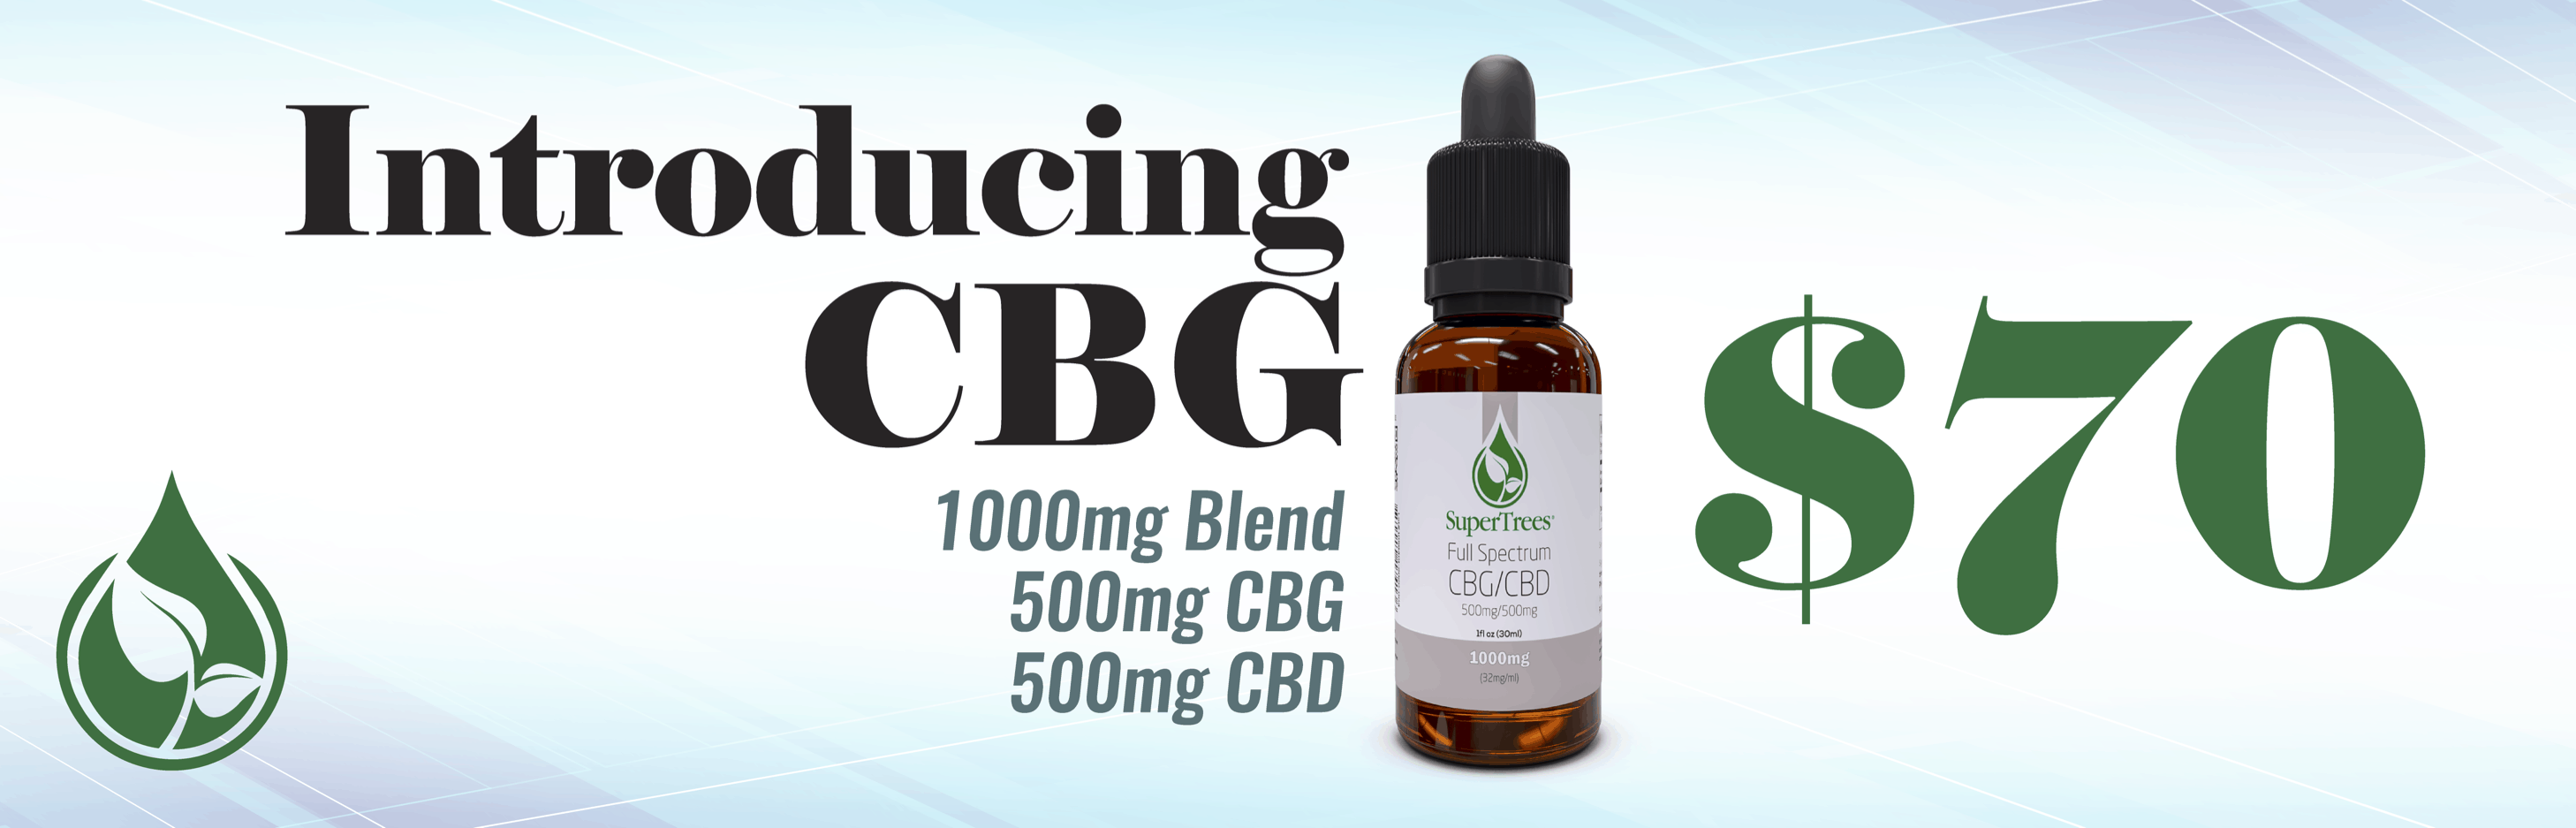 SuperTrees Botanicals - CBG CBD Combination - Front Slider - Desktop